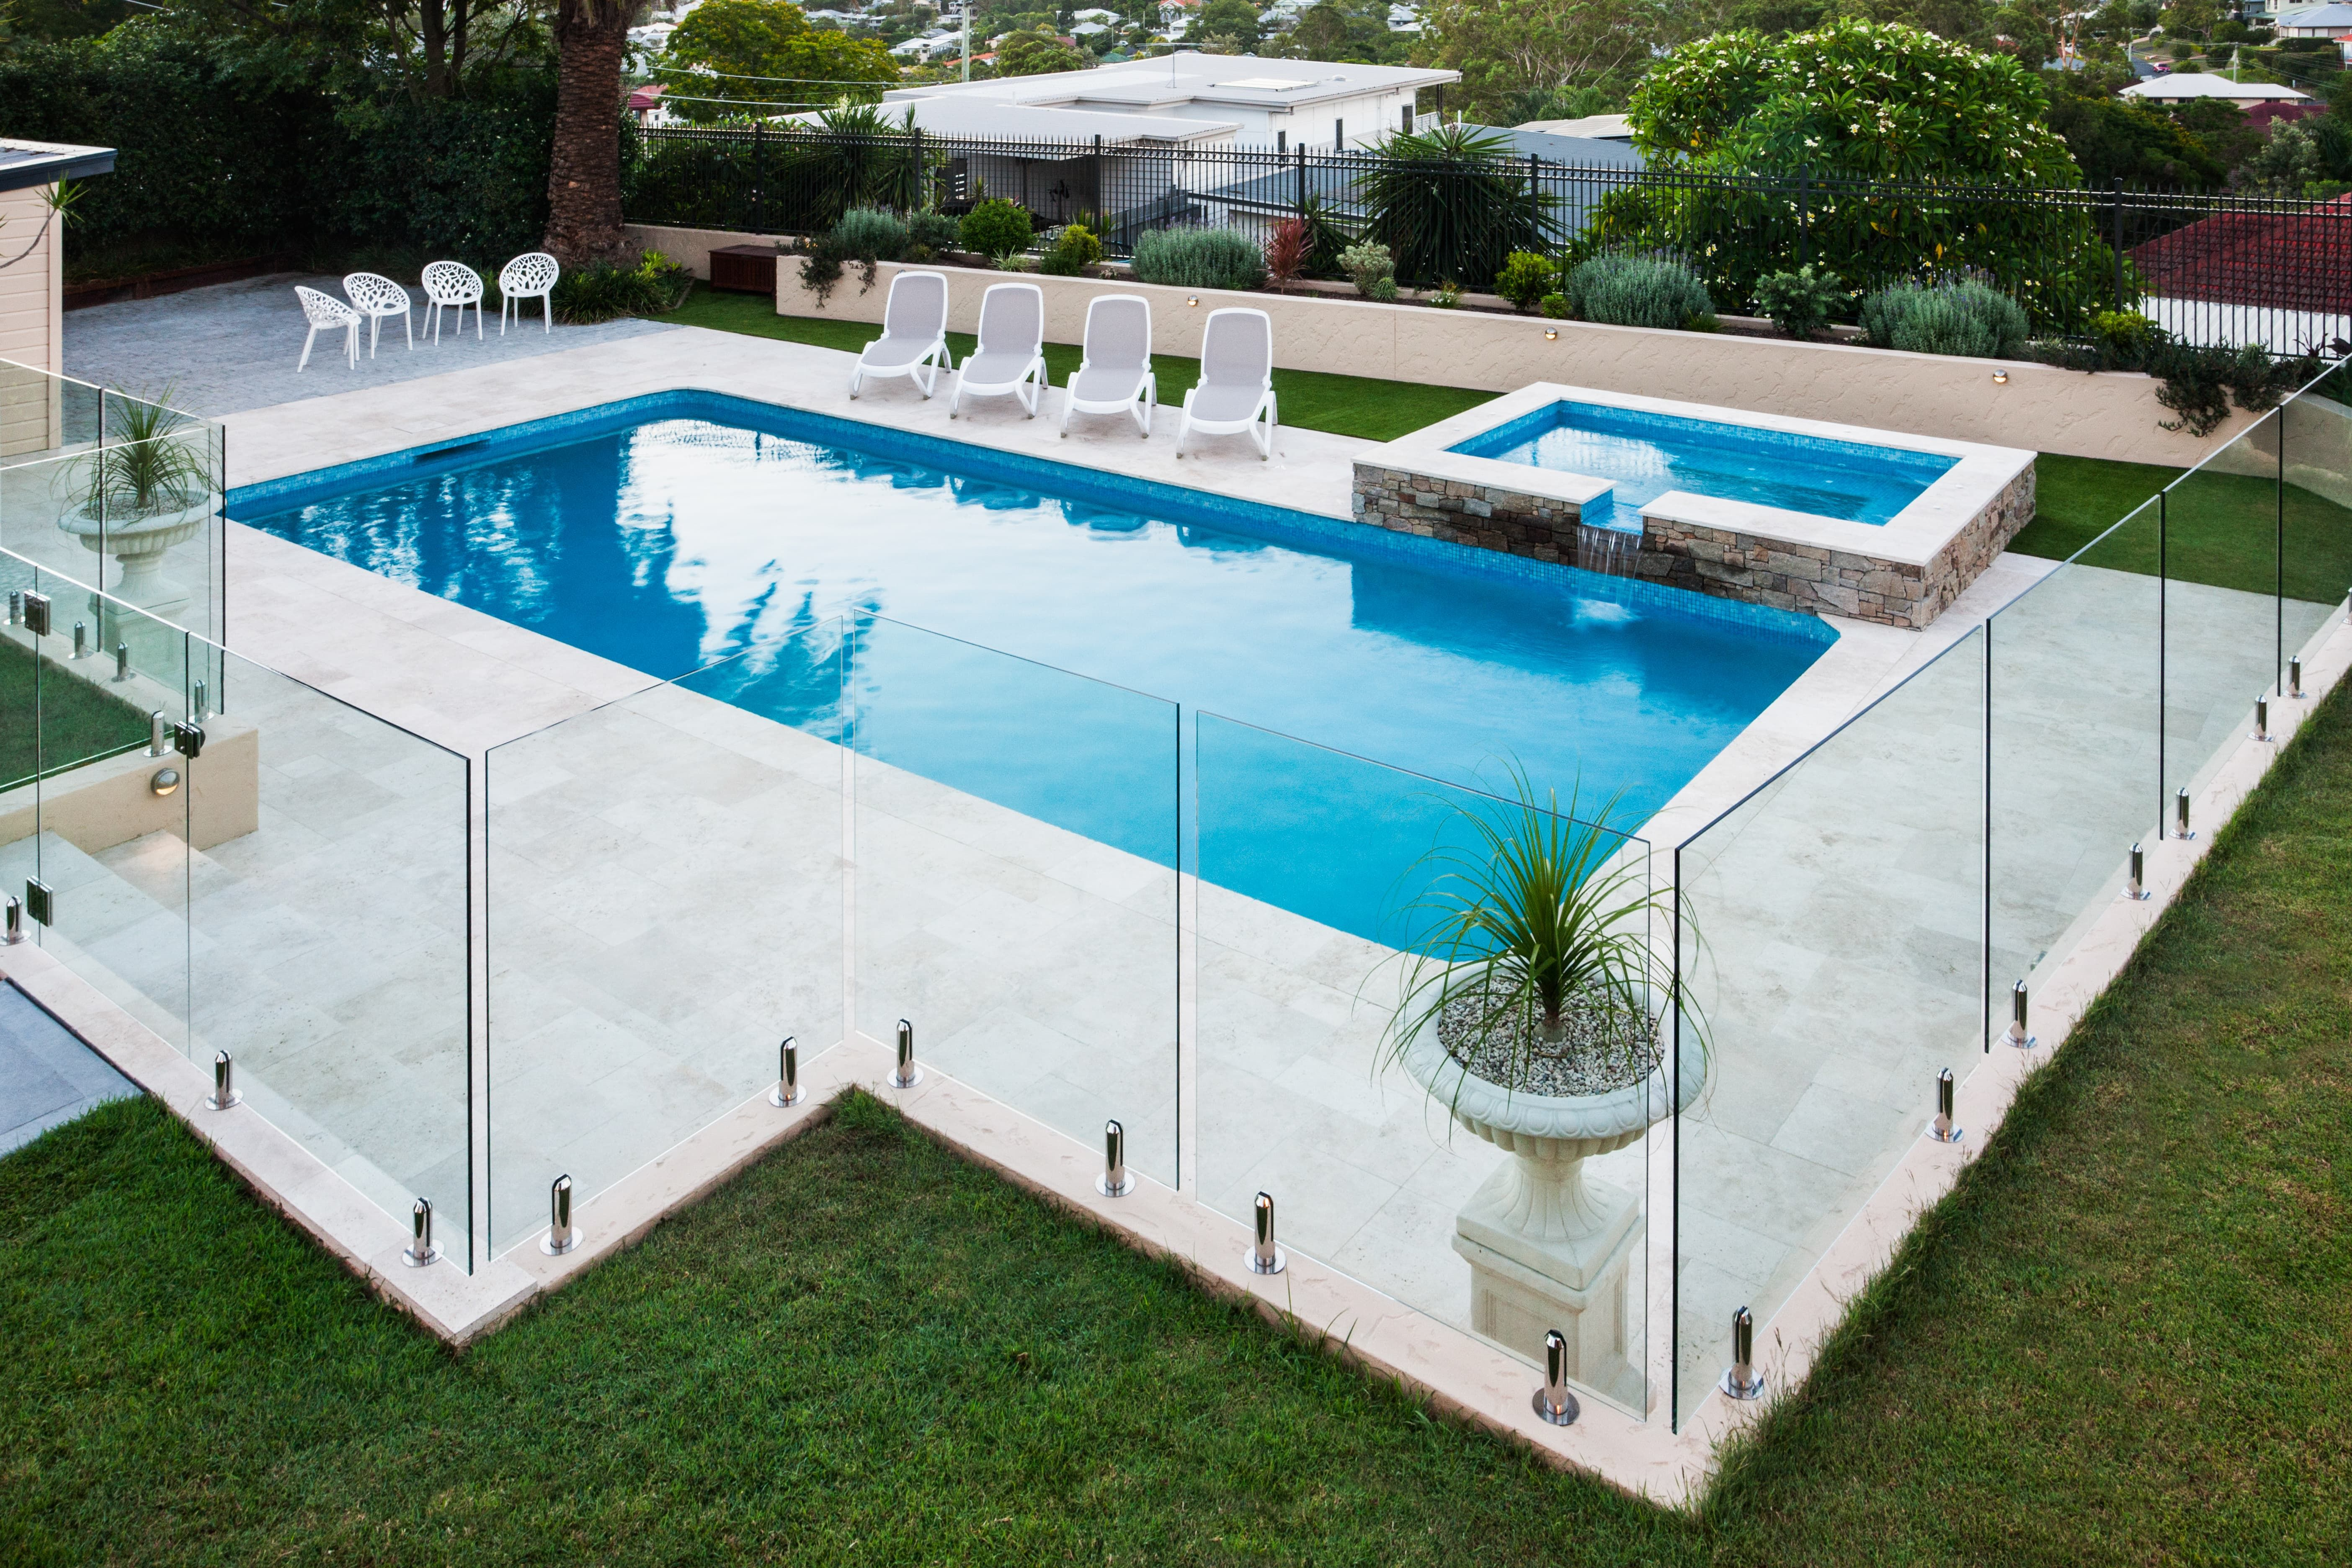 16 Pool Fence Ideas That Will Upgrade Your Yard Glass Pool Fencing Pool Patio Designs Glass Pool